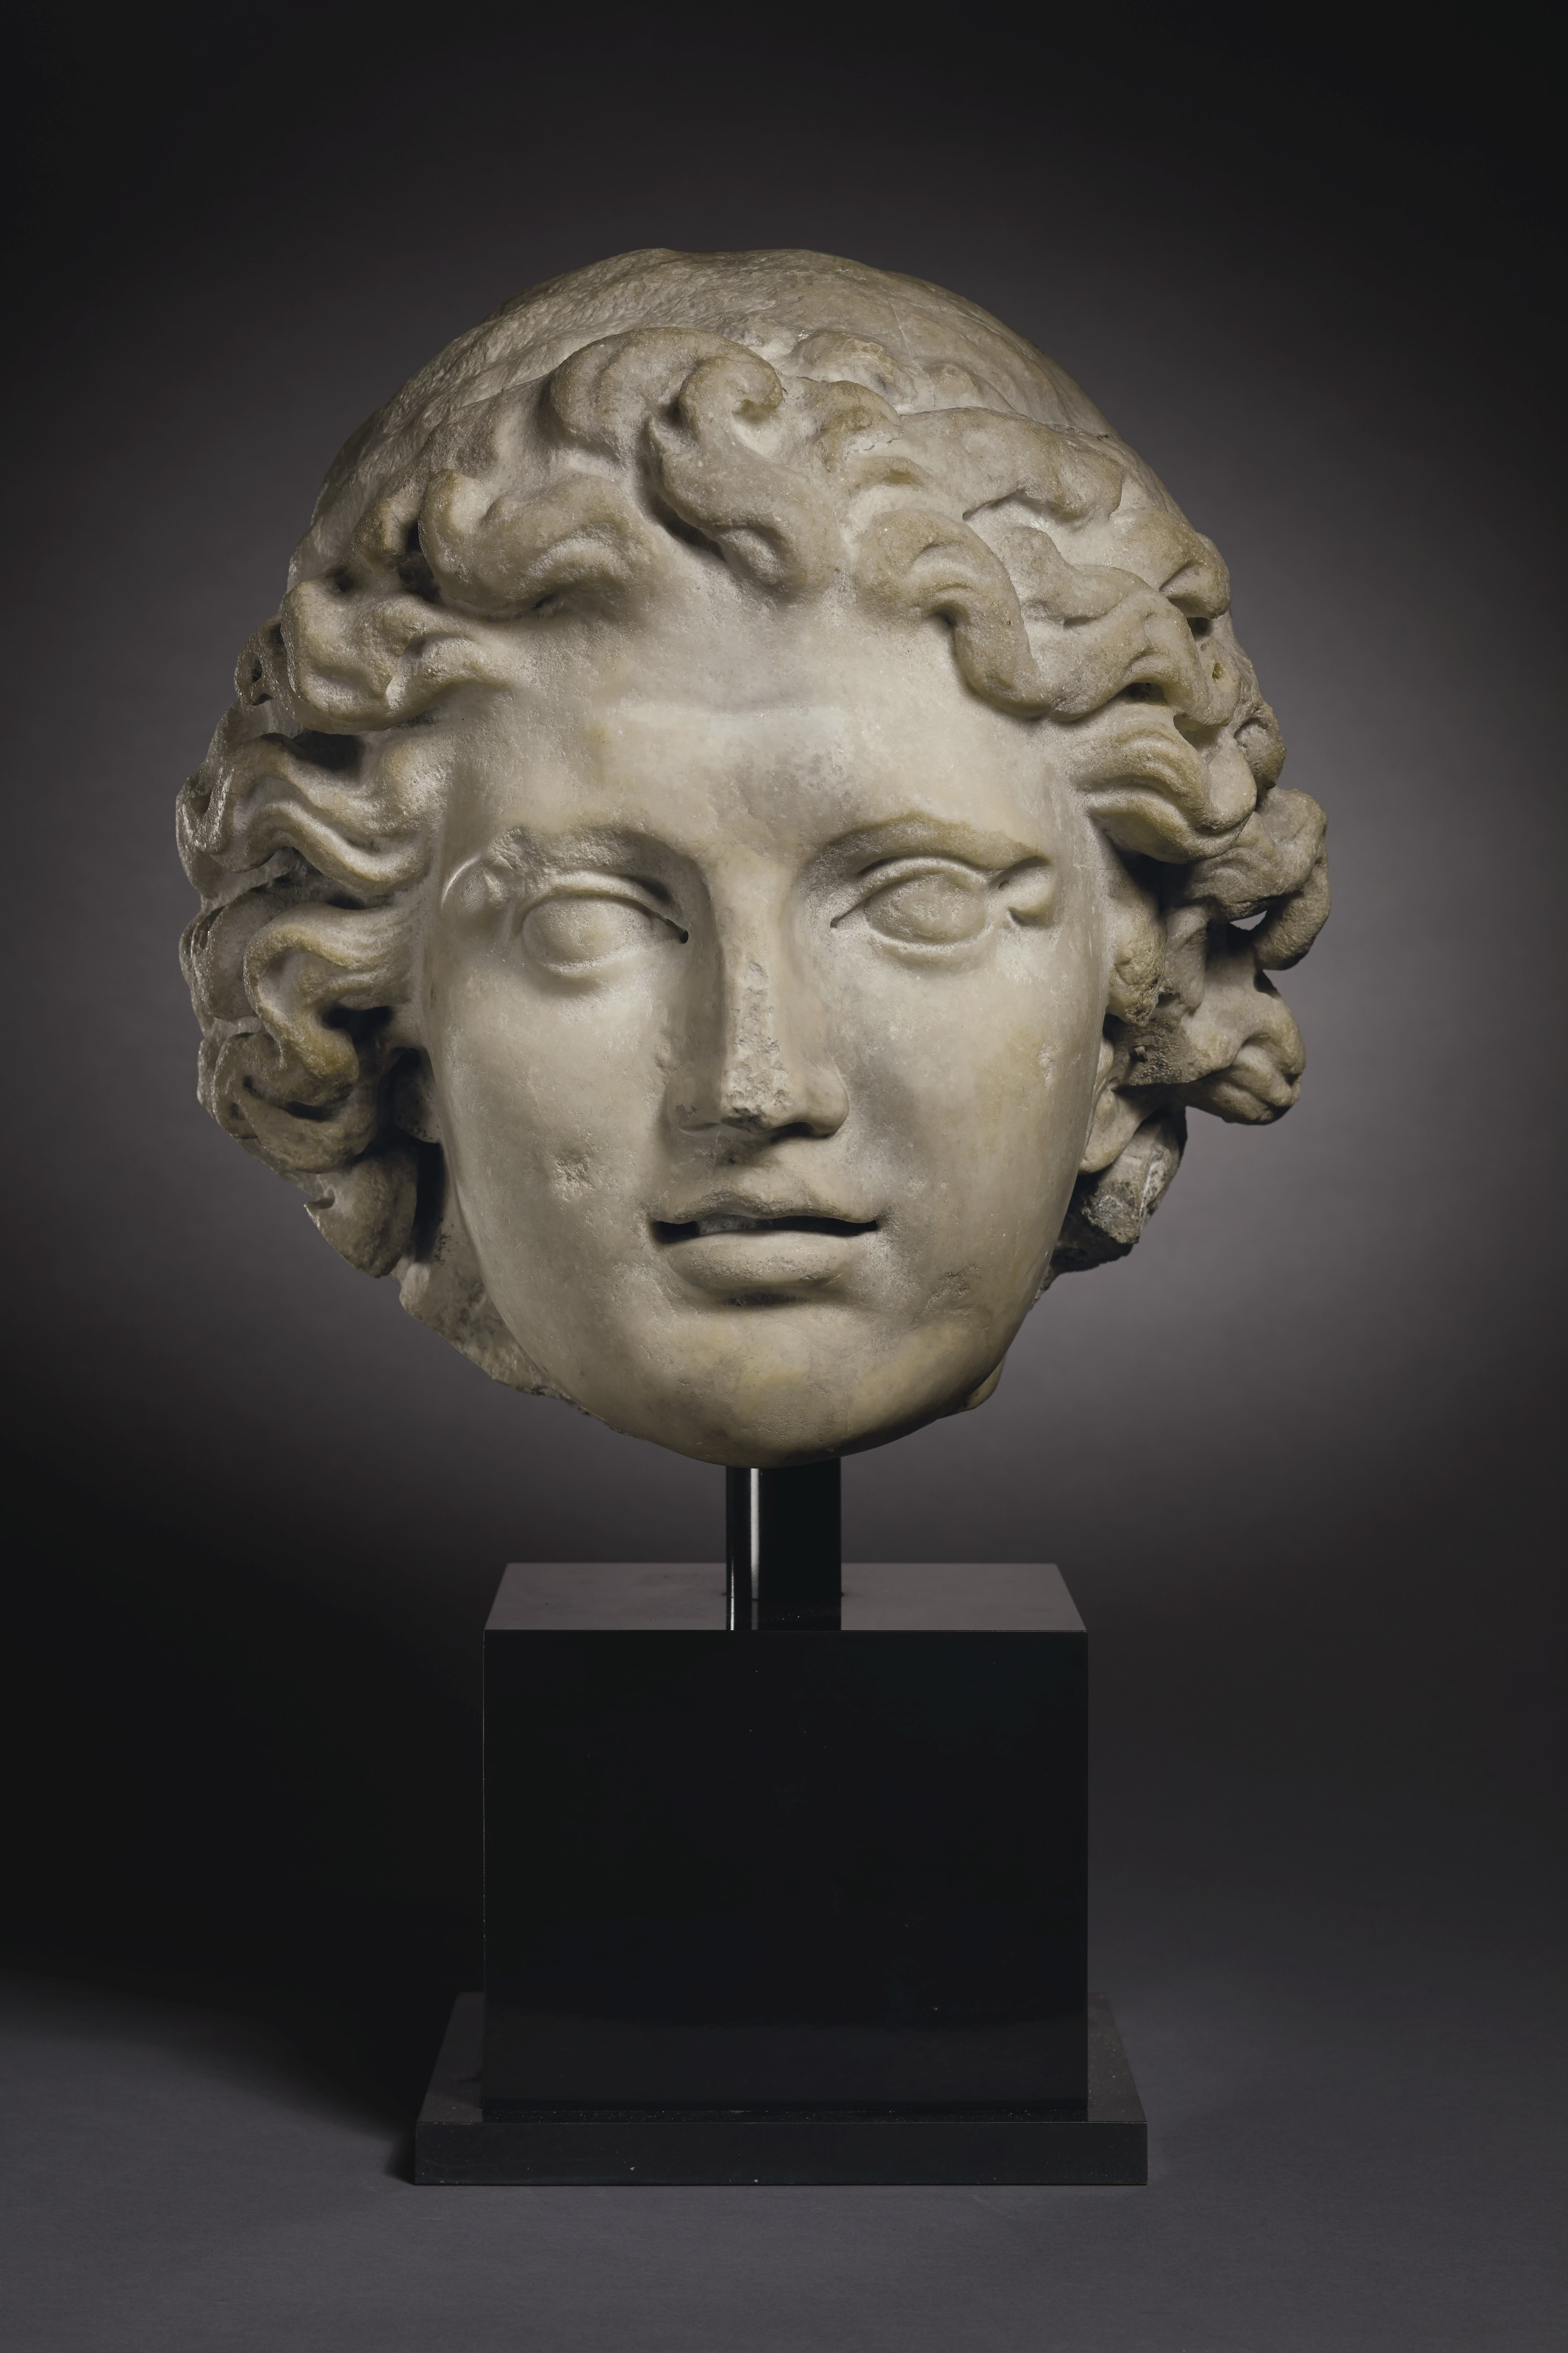 A MONUMENTAL ROMAN MARBLE PORTRAIT HEAD OF ALEXANDER THE GREAT